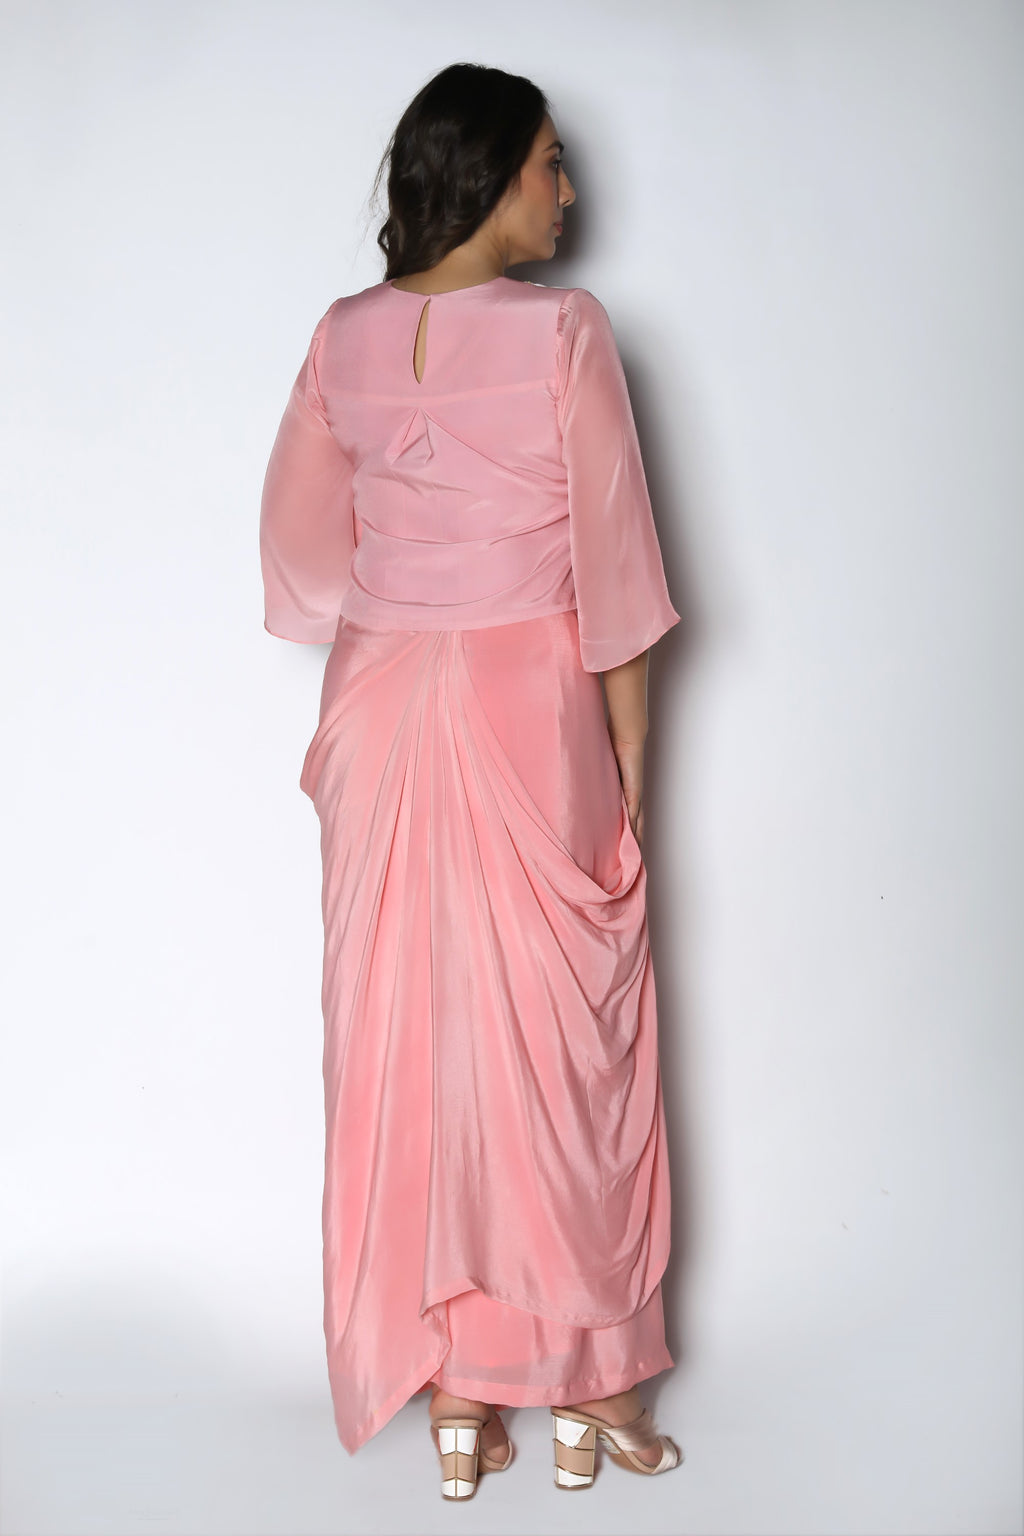 Nautanky - Baby Pink Crop Top With Drape Skirt - INDIASPOPUP.COM